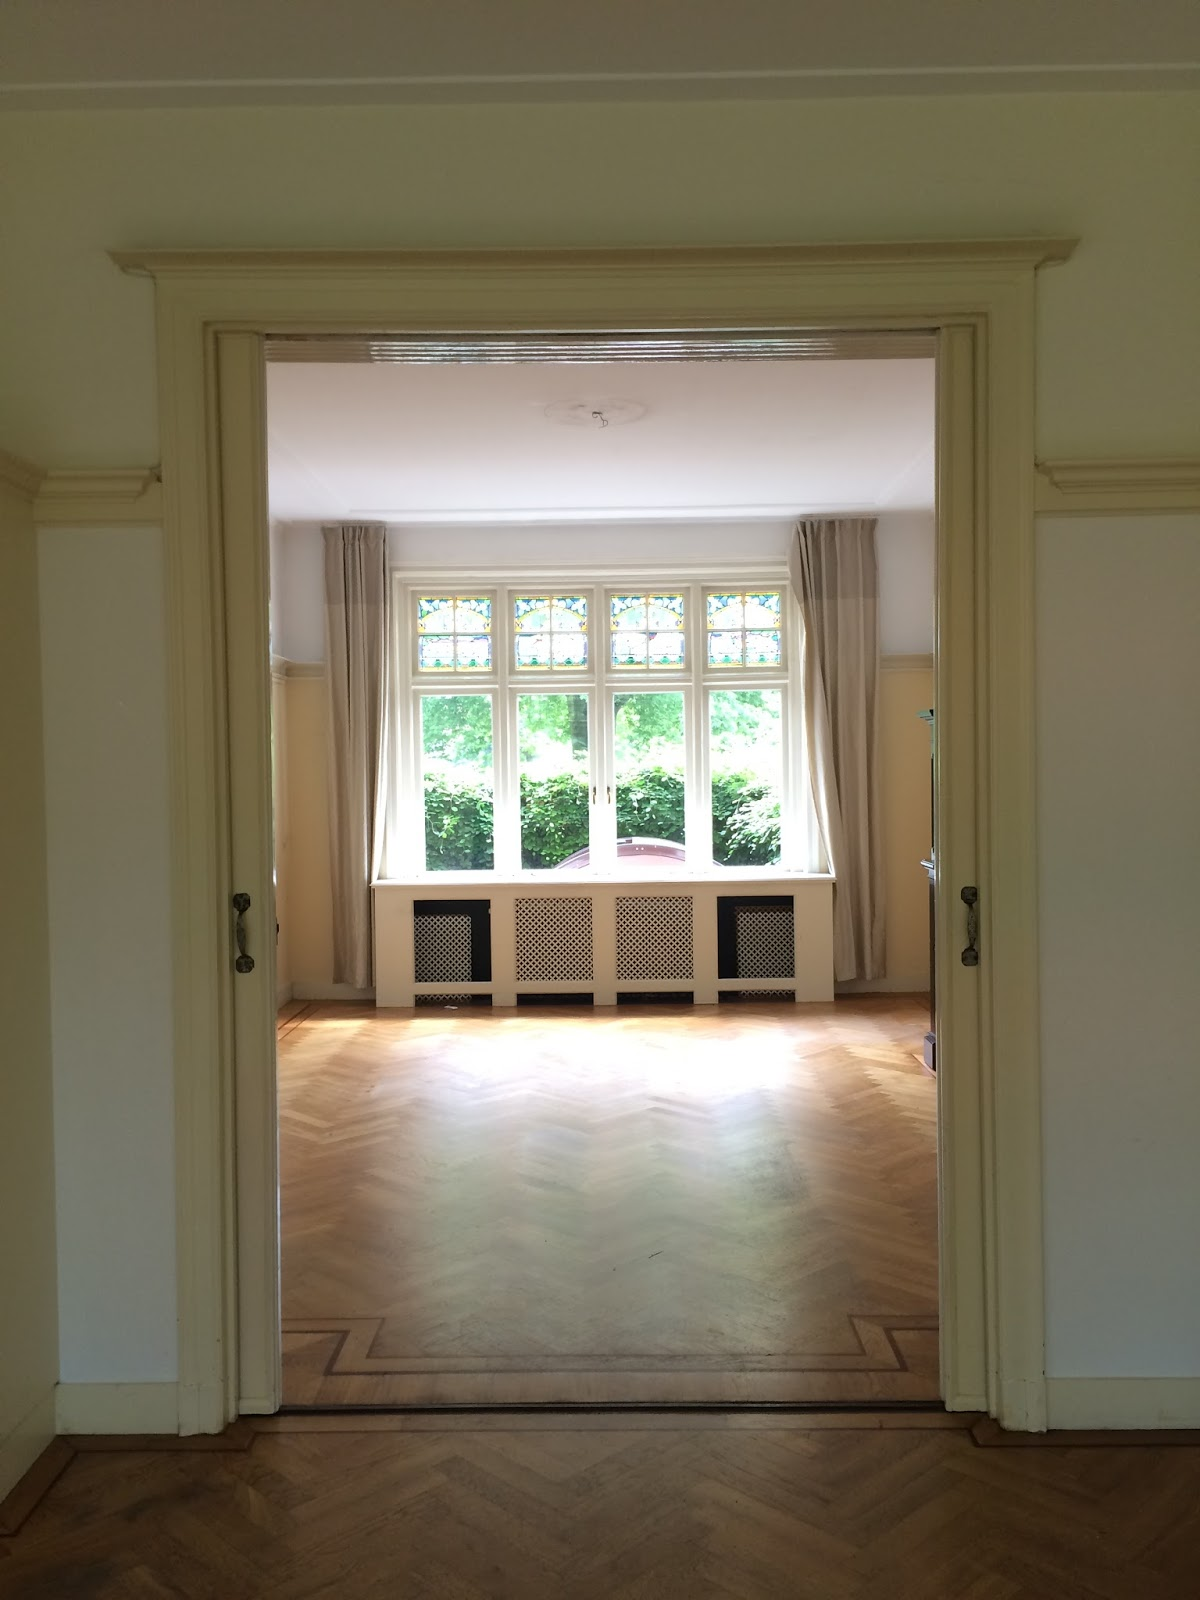 Inge bouman interieur architect: juli 2016